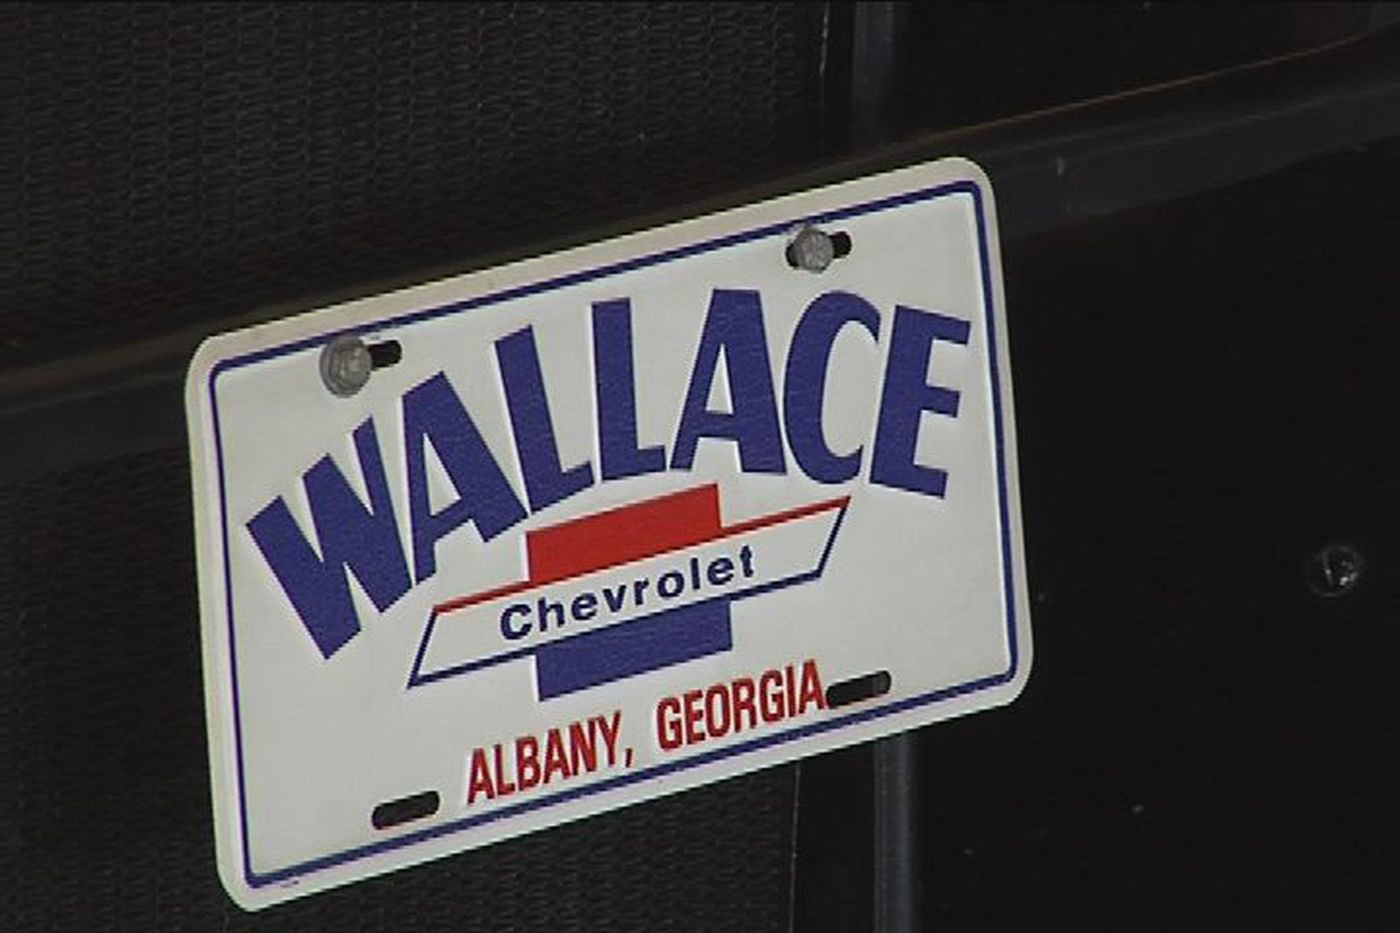 Prince Buys Wallace Chevrolet